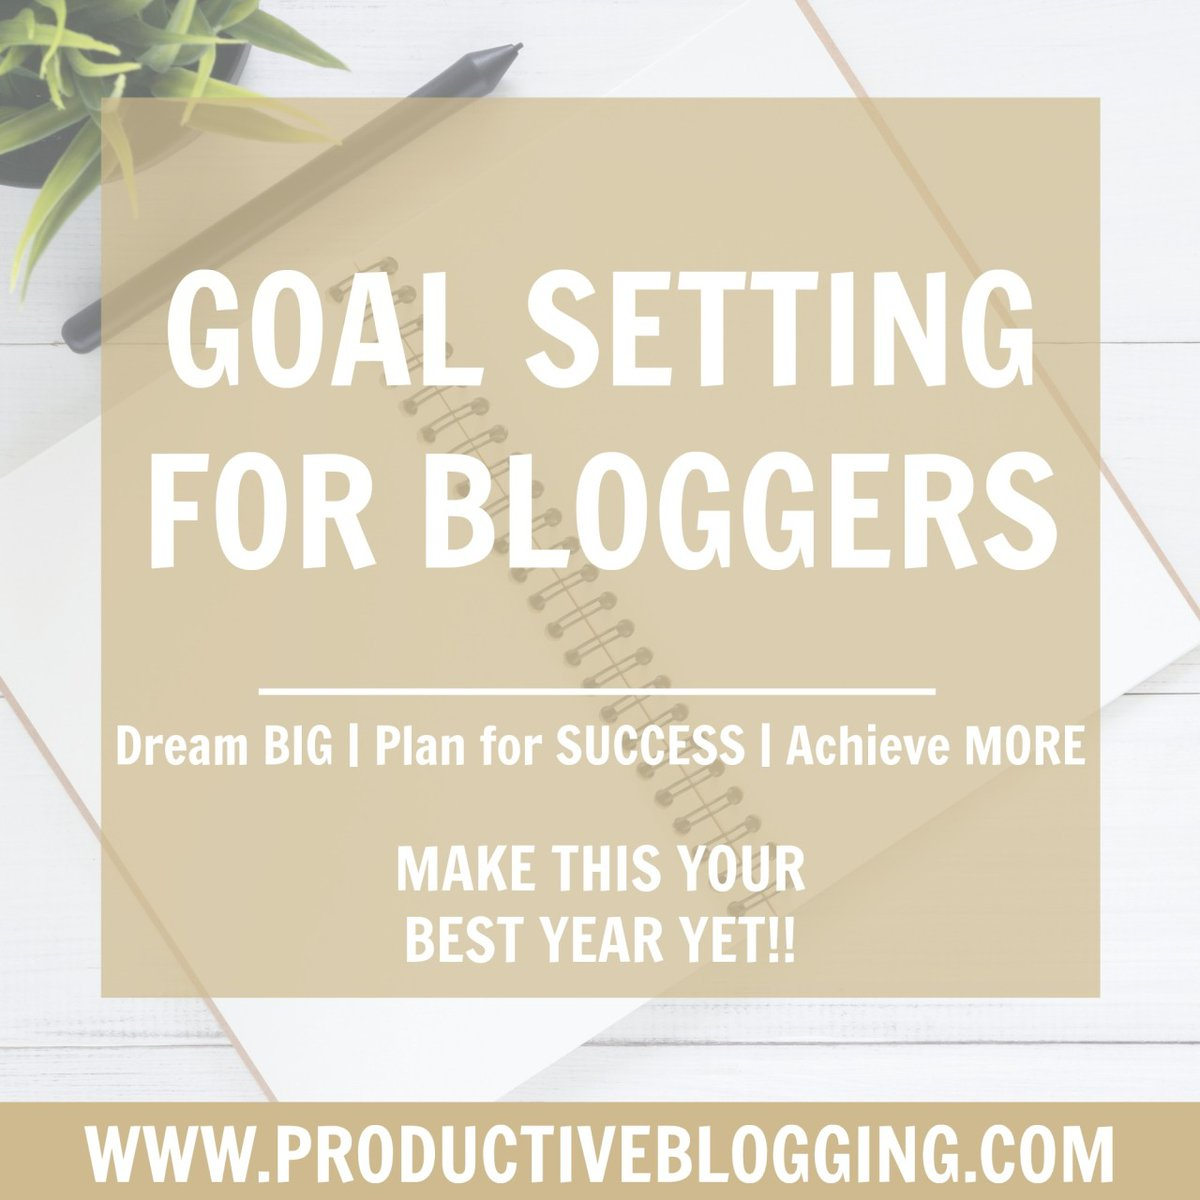 If you want help setting goals for your blog, I really recommend reading my blog post on goal setting for bloggers.  You can also grab yourself my FREE goal setting worksheets >>> http://bit.ly/2MSQLQJ   #goalsetting #bloggingtips #productivebloggingpic.twitter.com/lvB0PD9OD6